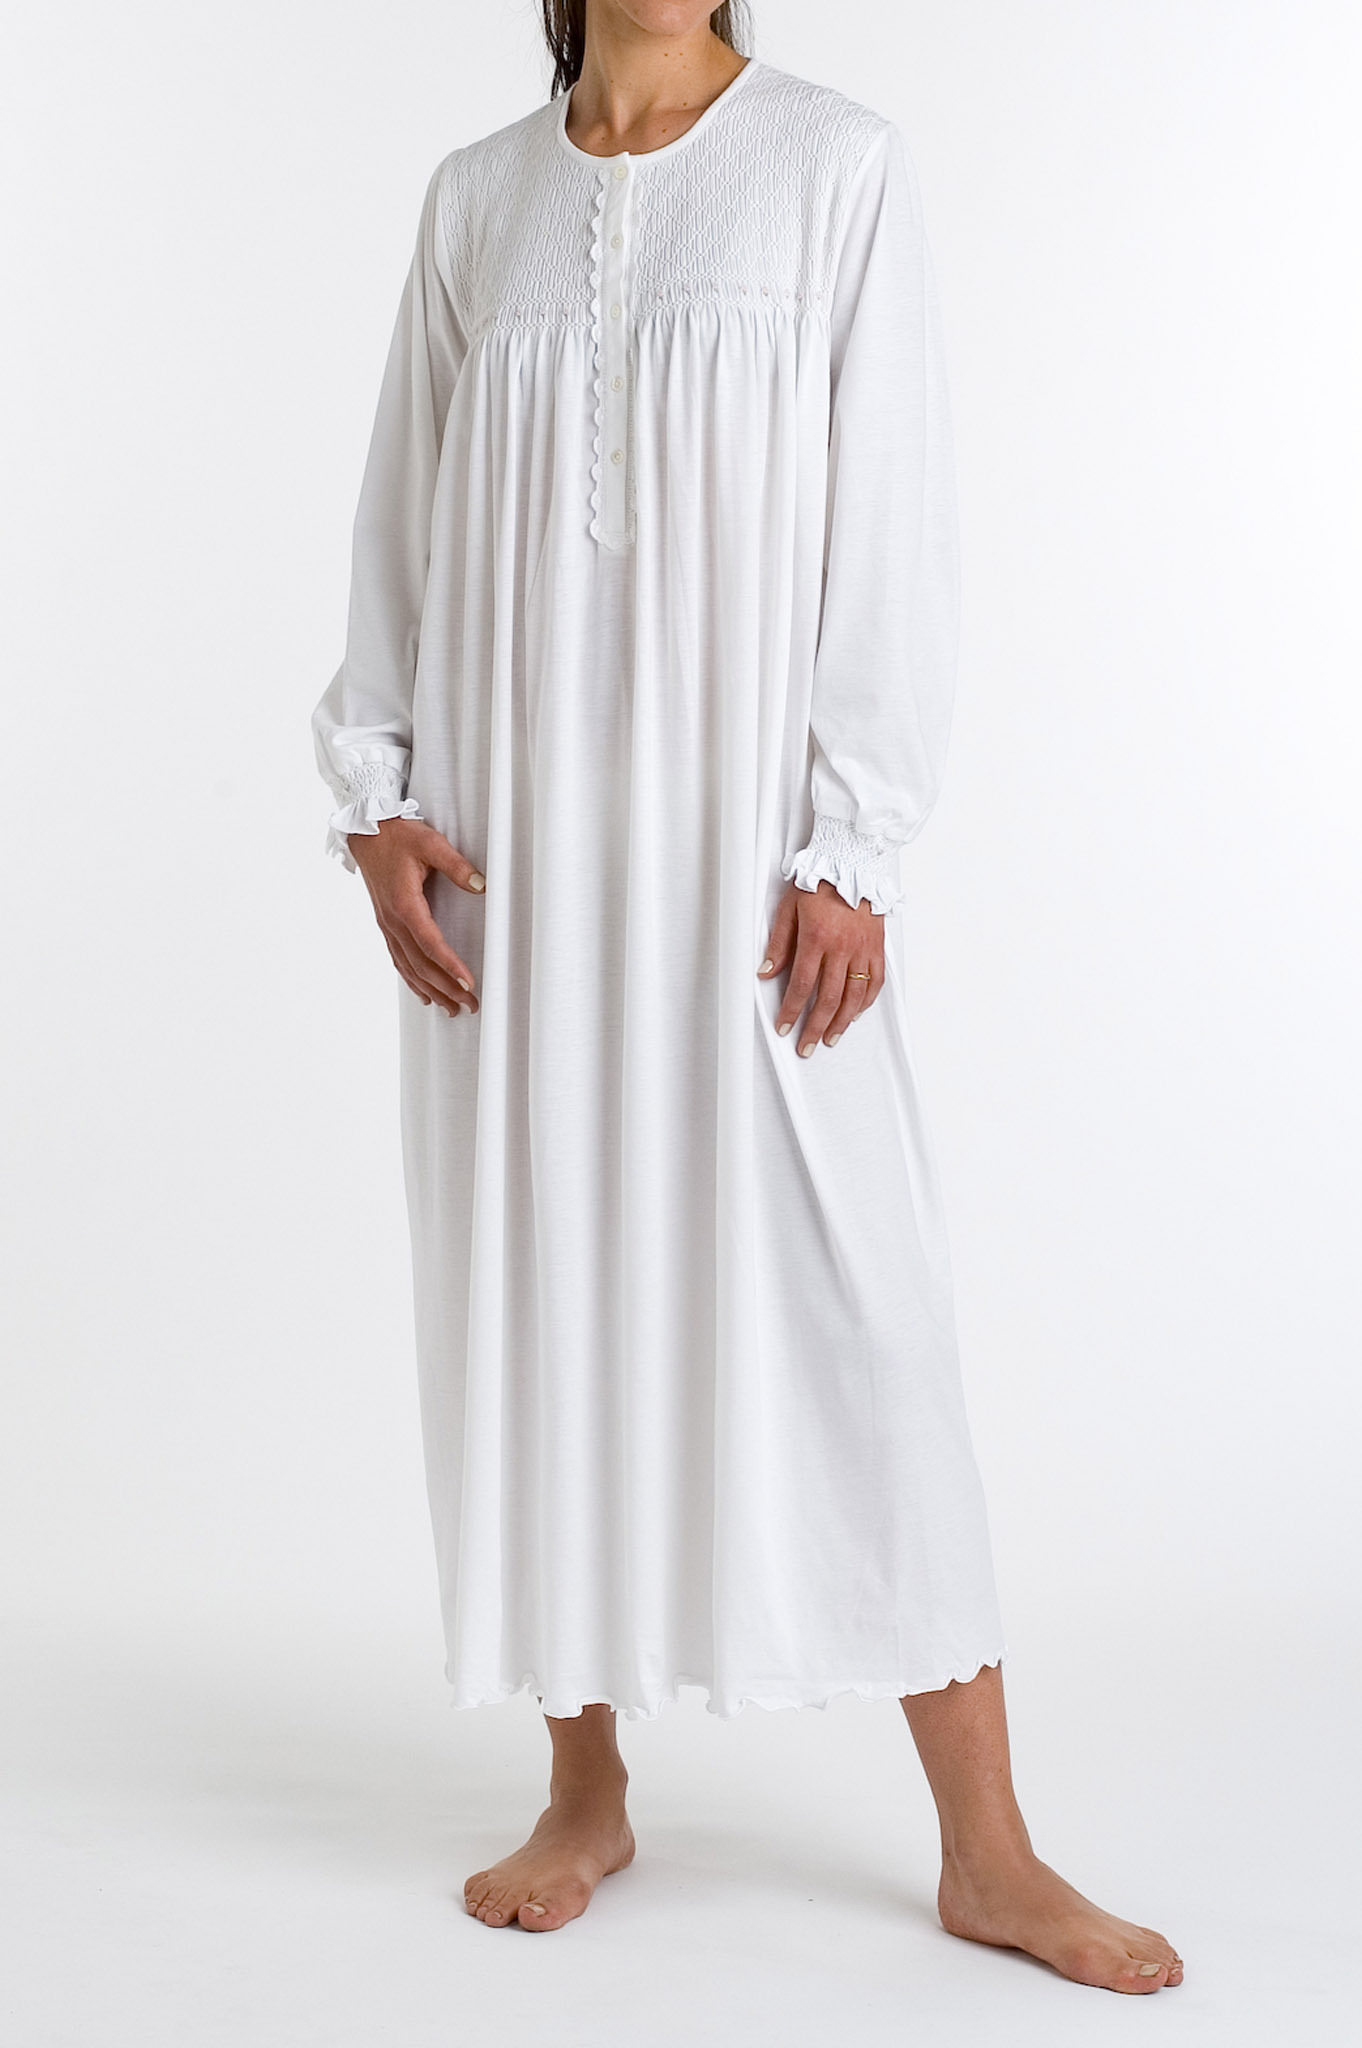 P.Jamas Tulipan Embroidered Long Sleeved Gown White w/ Pi...